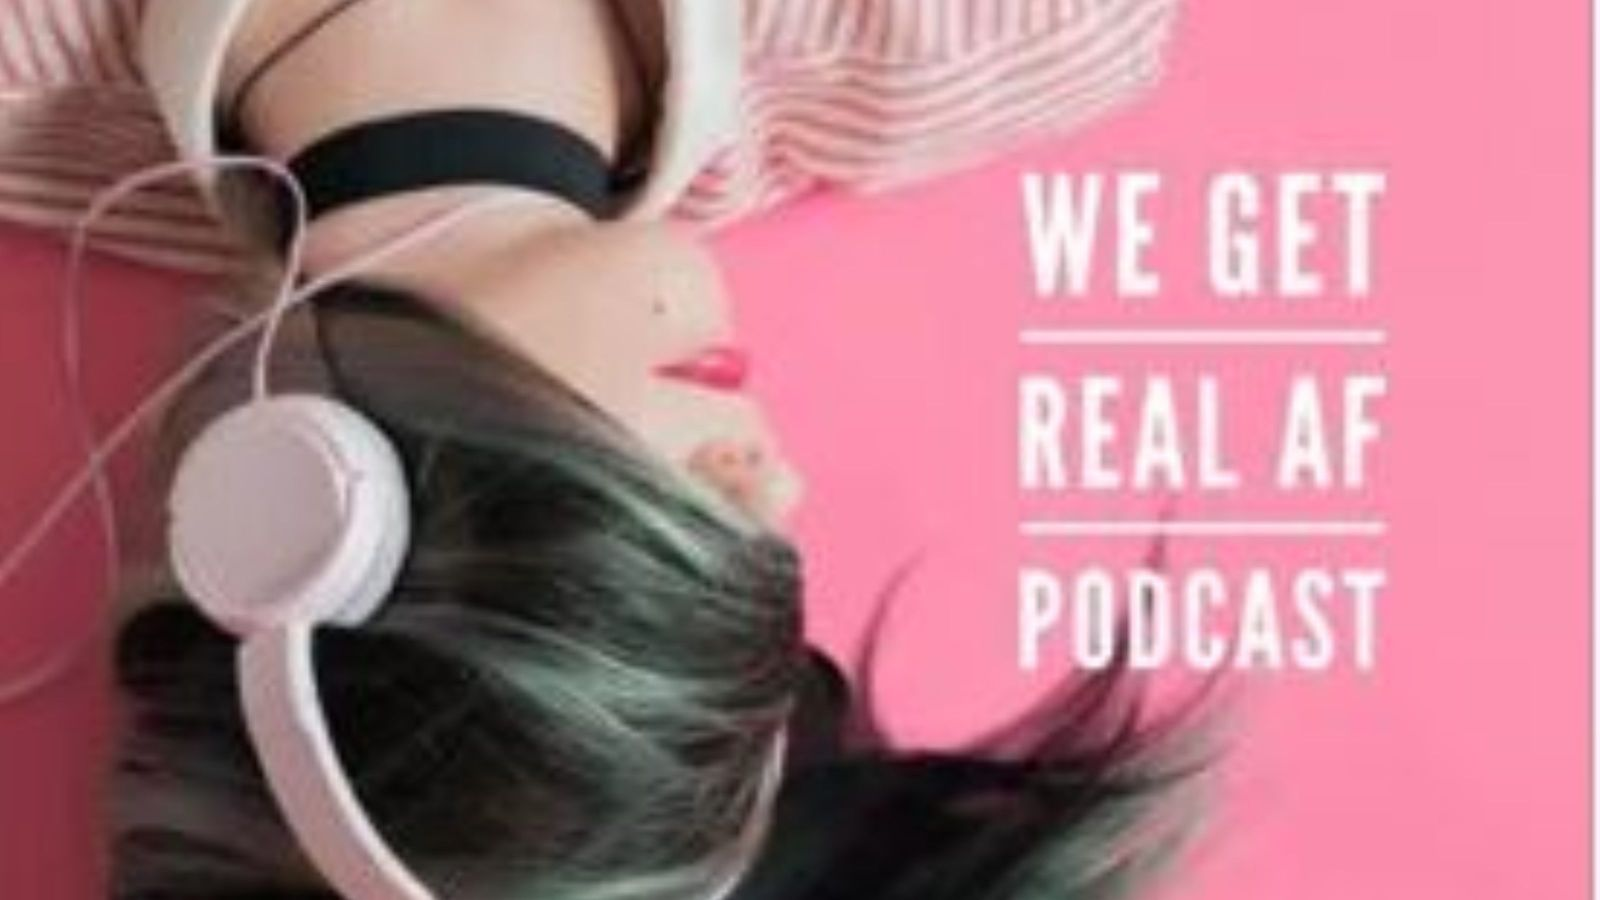 We Get Real podcast